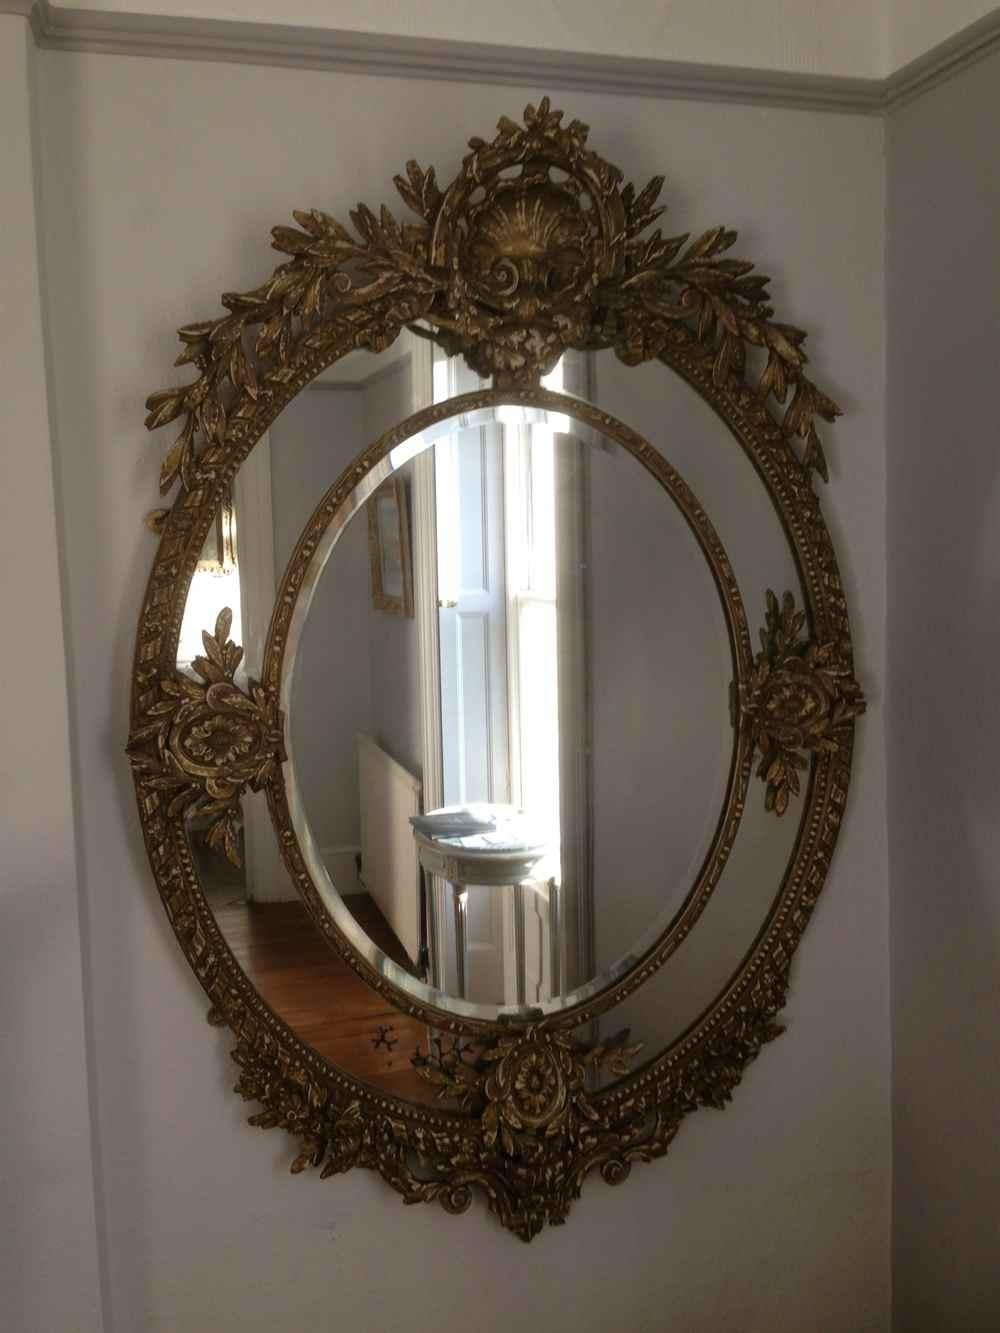 A Wonderful Large Antique 19Th Century French Carved Wood Oval Intended For French Mirrors Antique (Image 8 of 20)